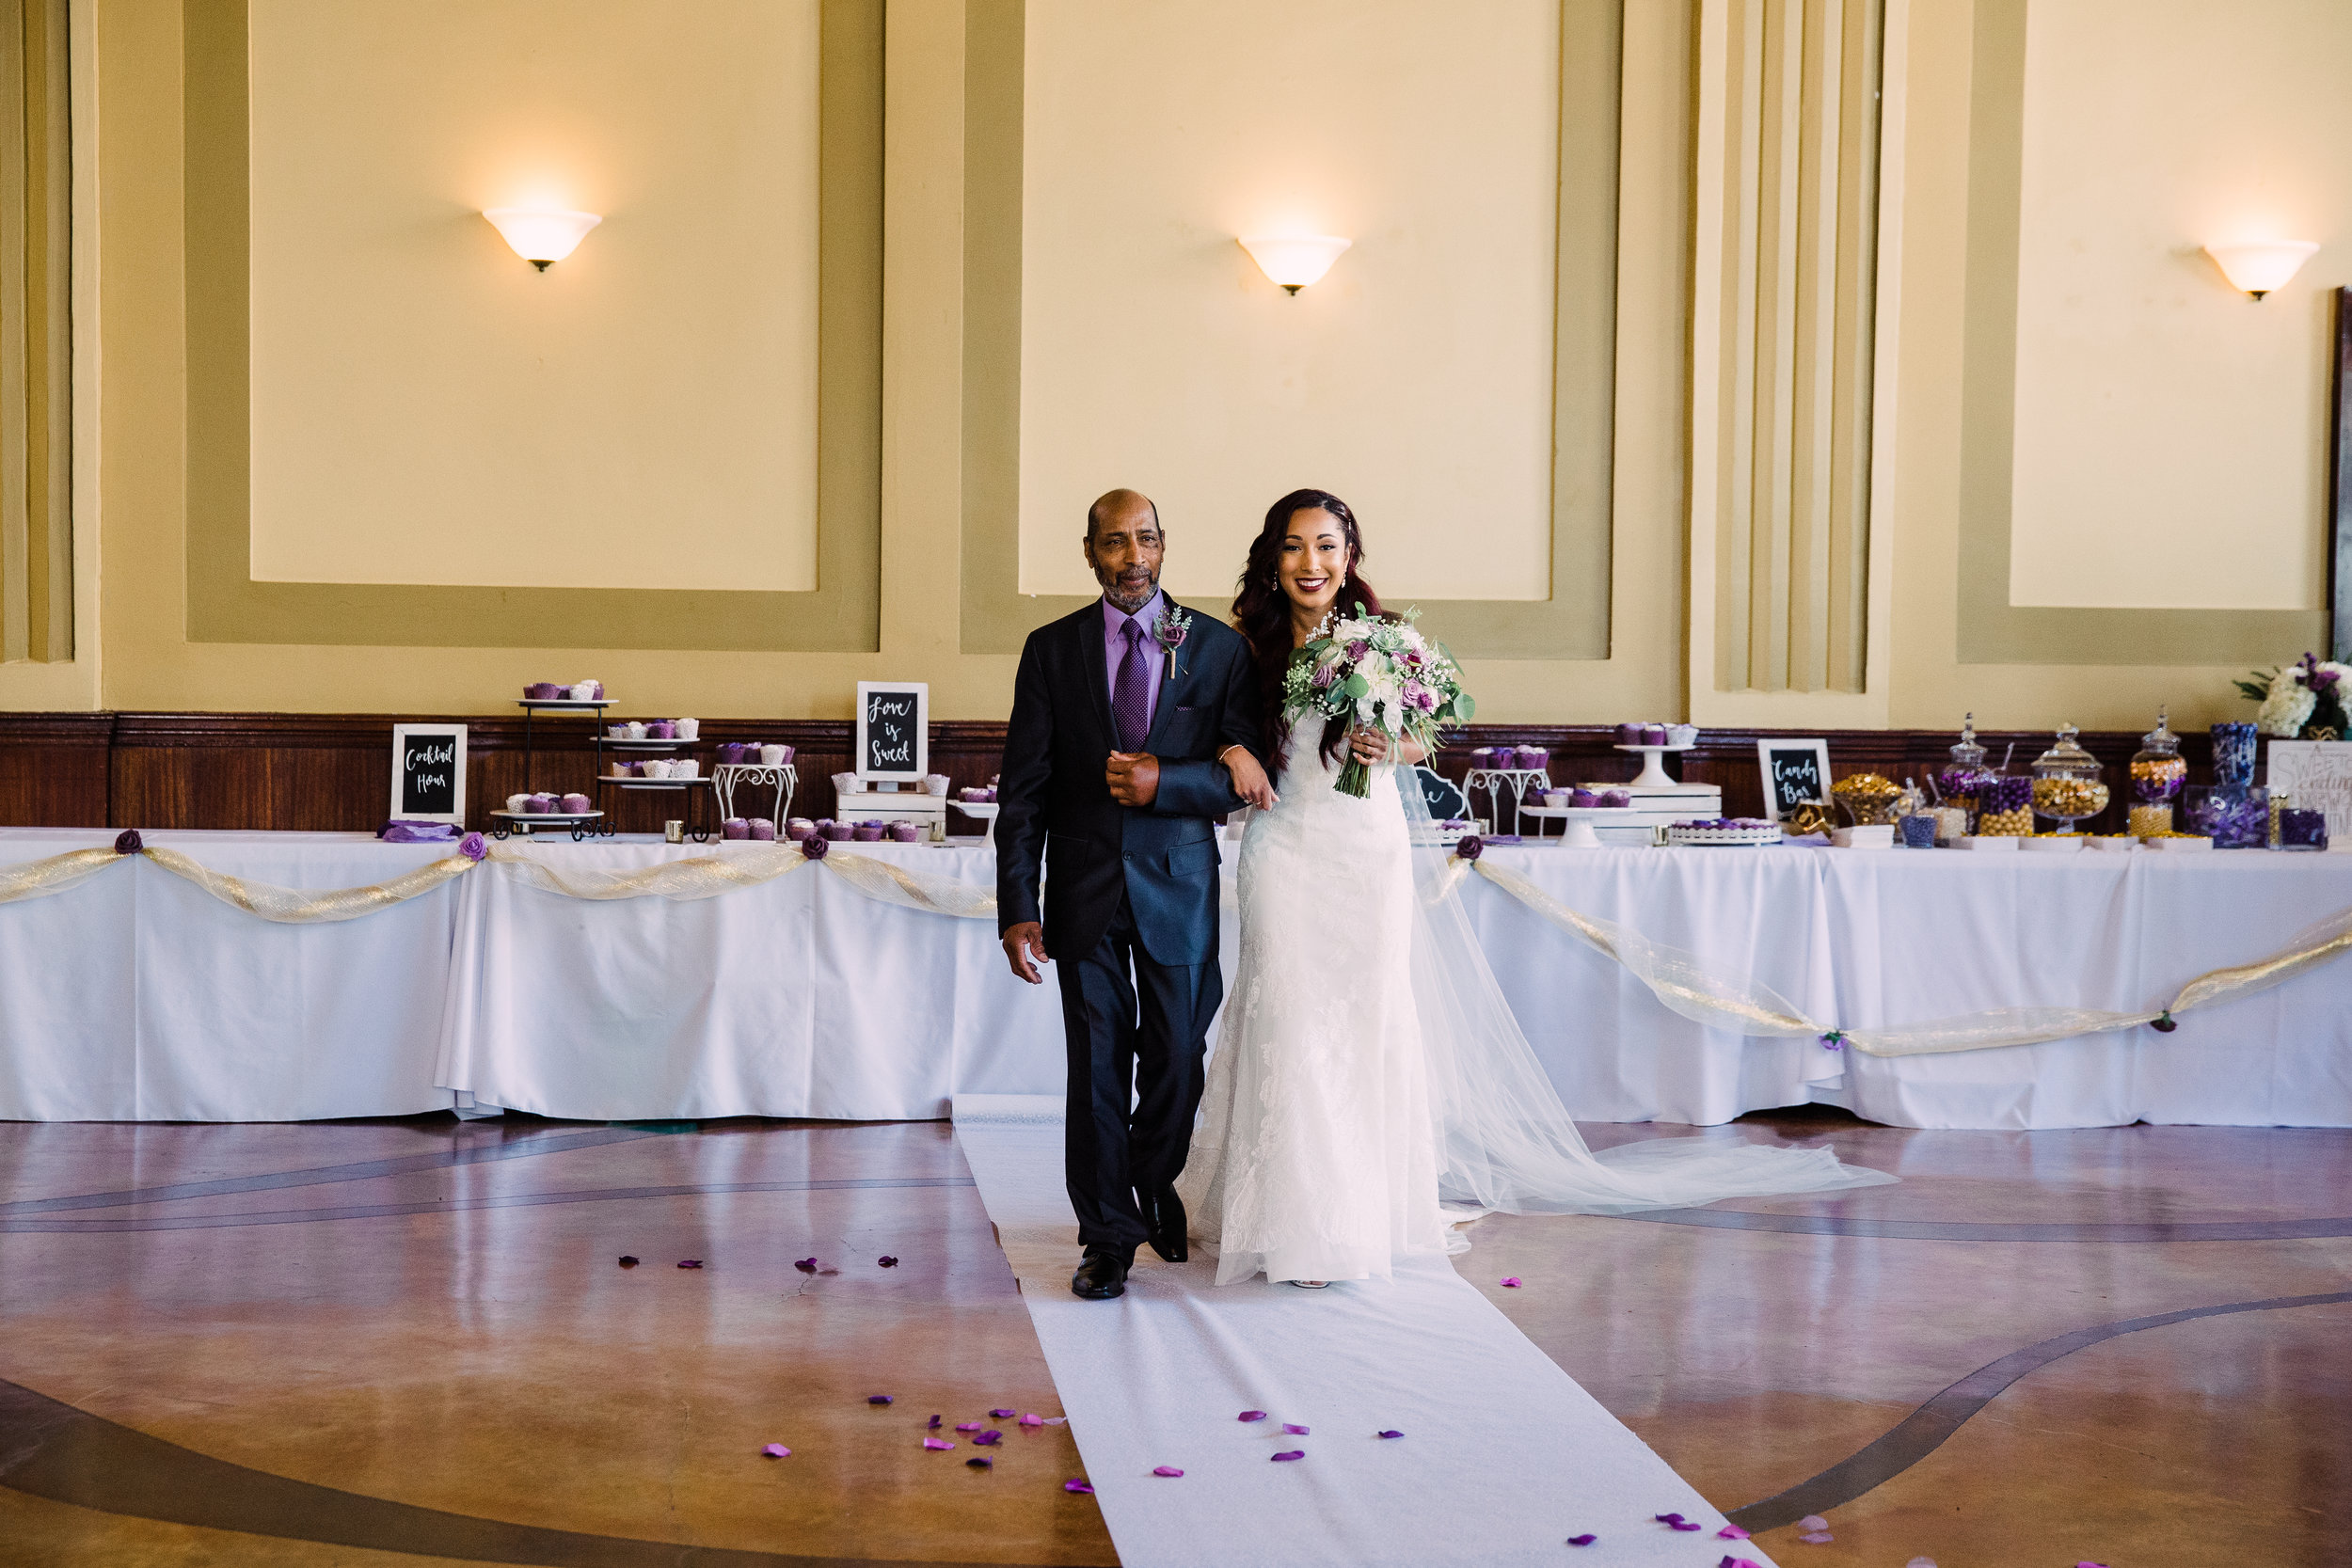 The Vault Wedding in Hollister, California